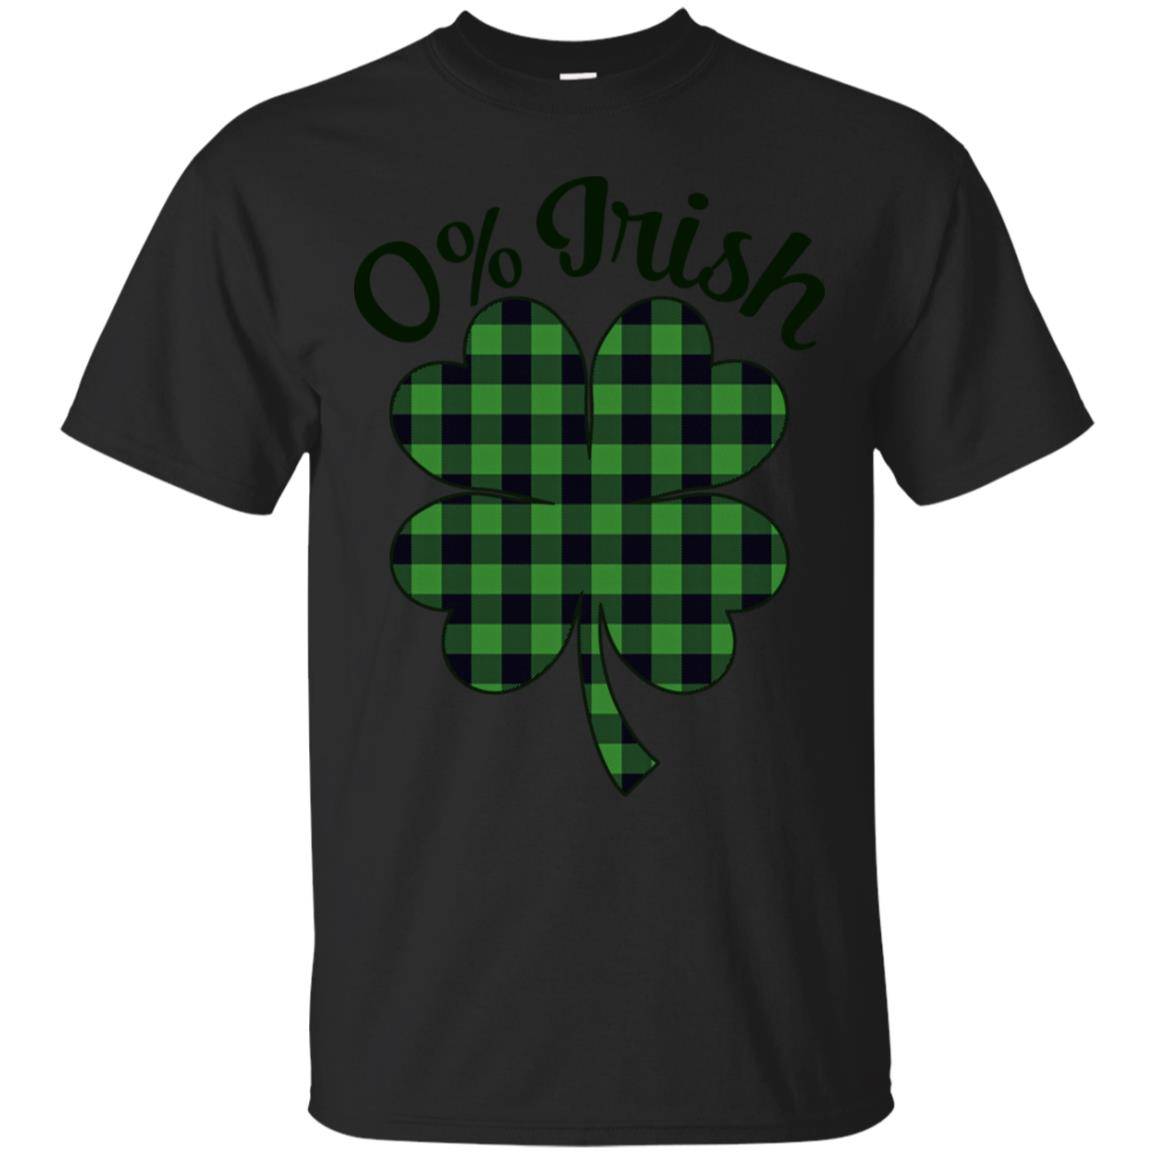 0% Irish T-shirt Green Buffalo Plaid St Patricks Day Shirt 99promocode